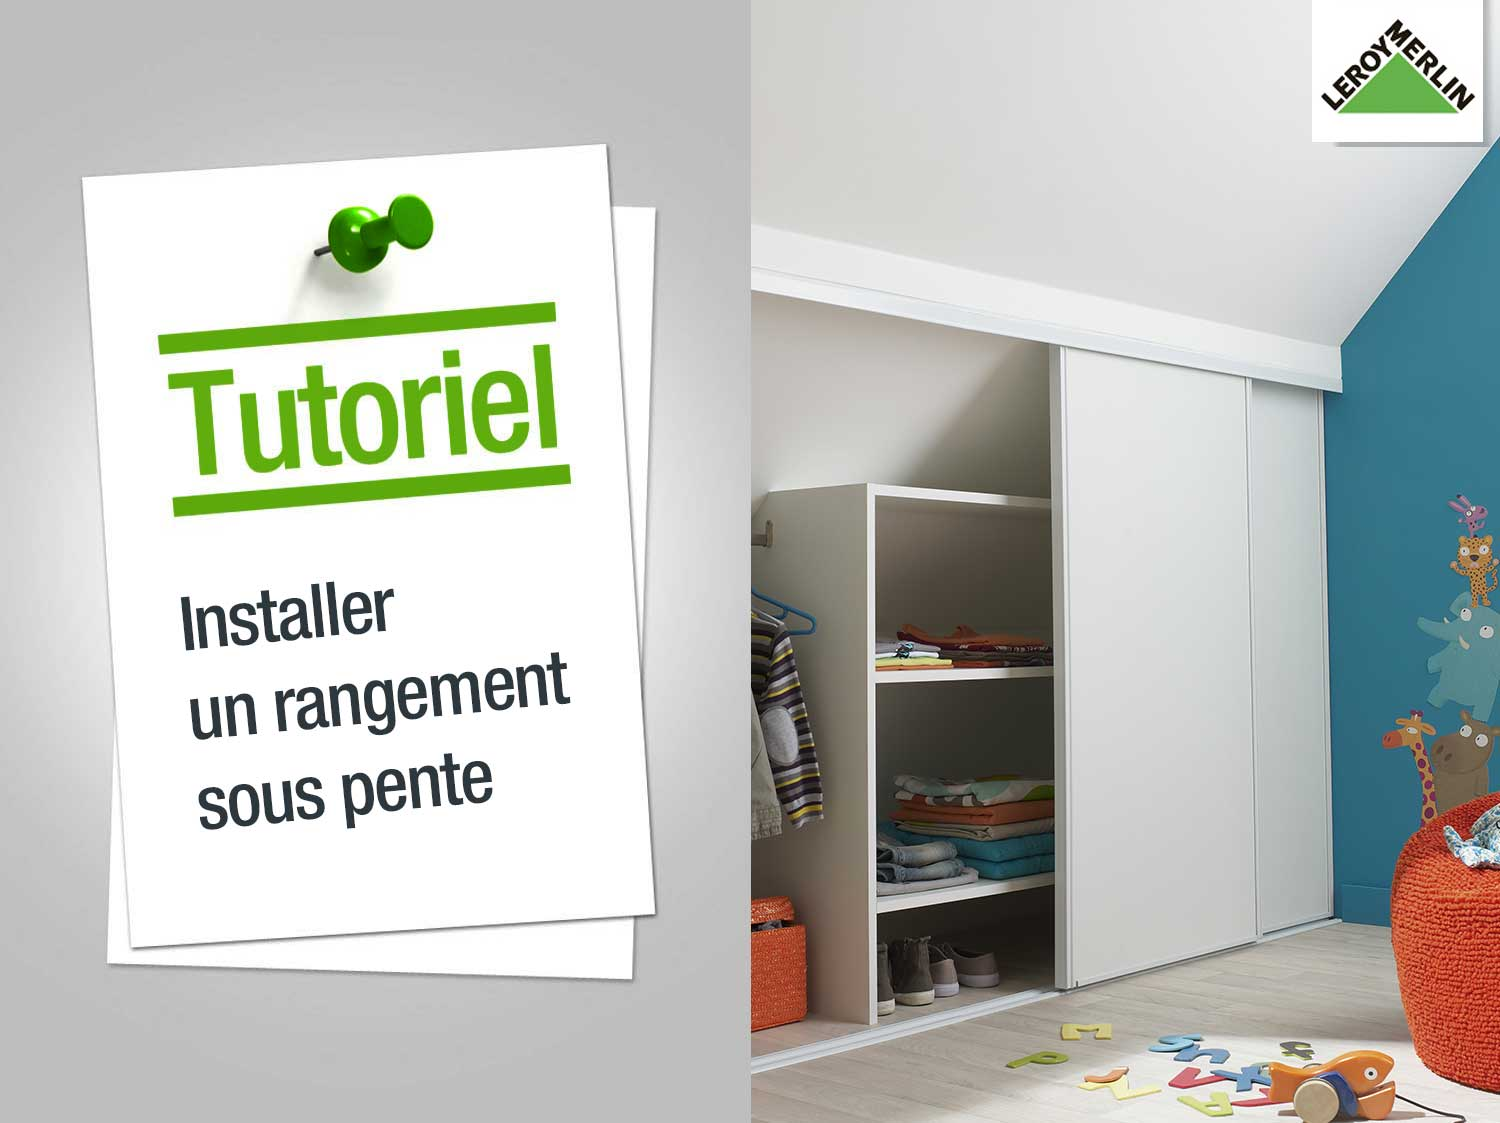 Amenagement Comble Leroy Merlin Comment Installer Un Placard De Rangement Sous Pente Leroy Merlin